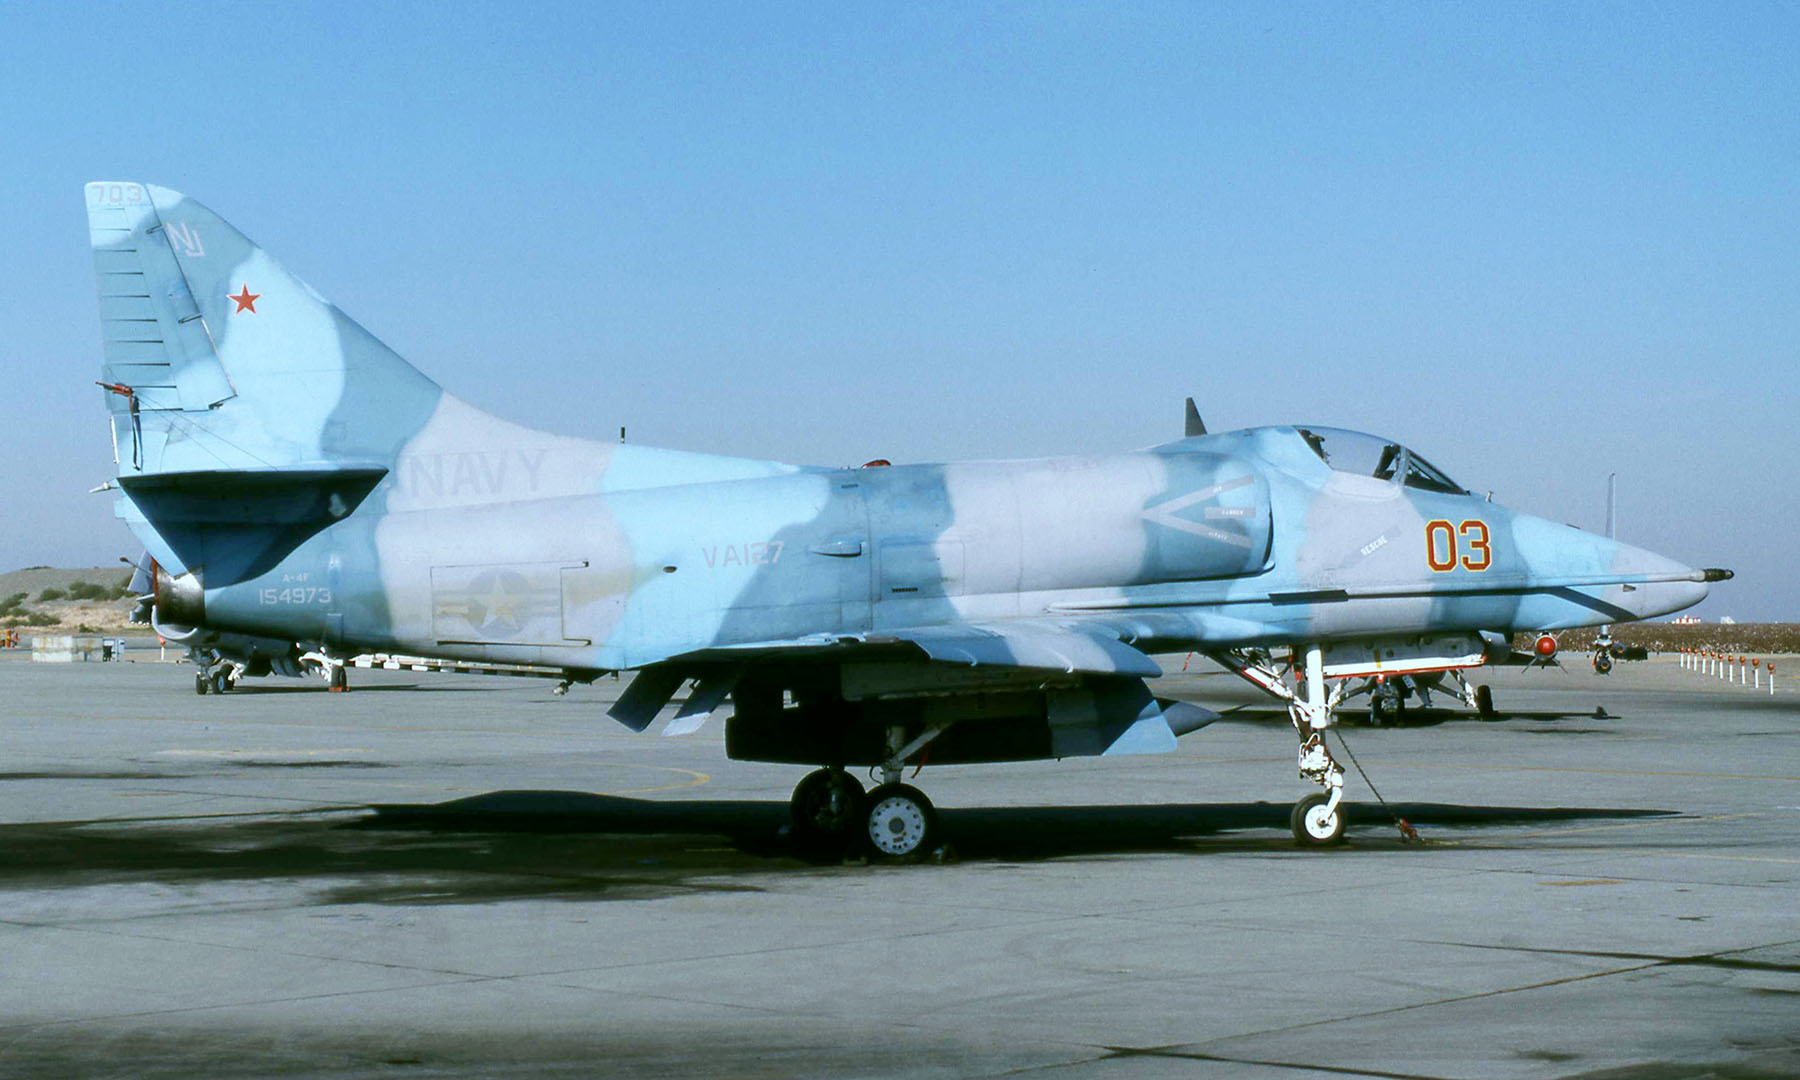 [ESCI] A4F Super Fox VA-127 Aggressor Aero_a-4_062